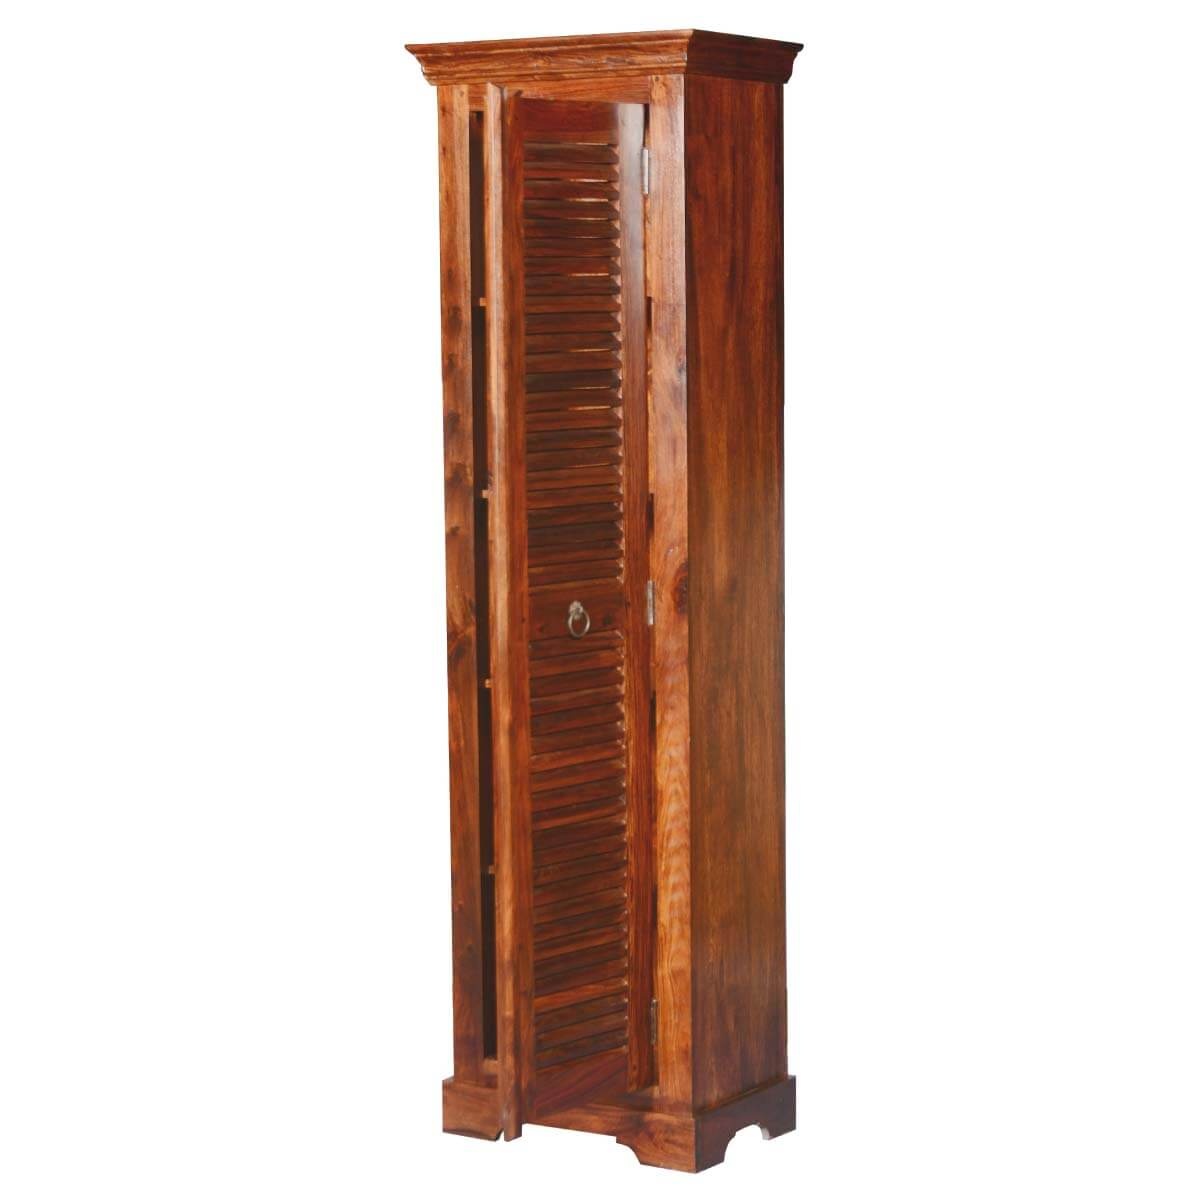 Acacia Wood Door : Farmhouse shutter door solid wood acacia quot tower cabinet